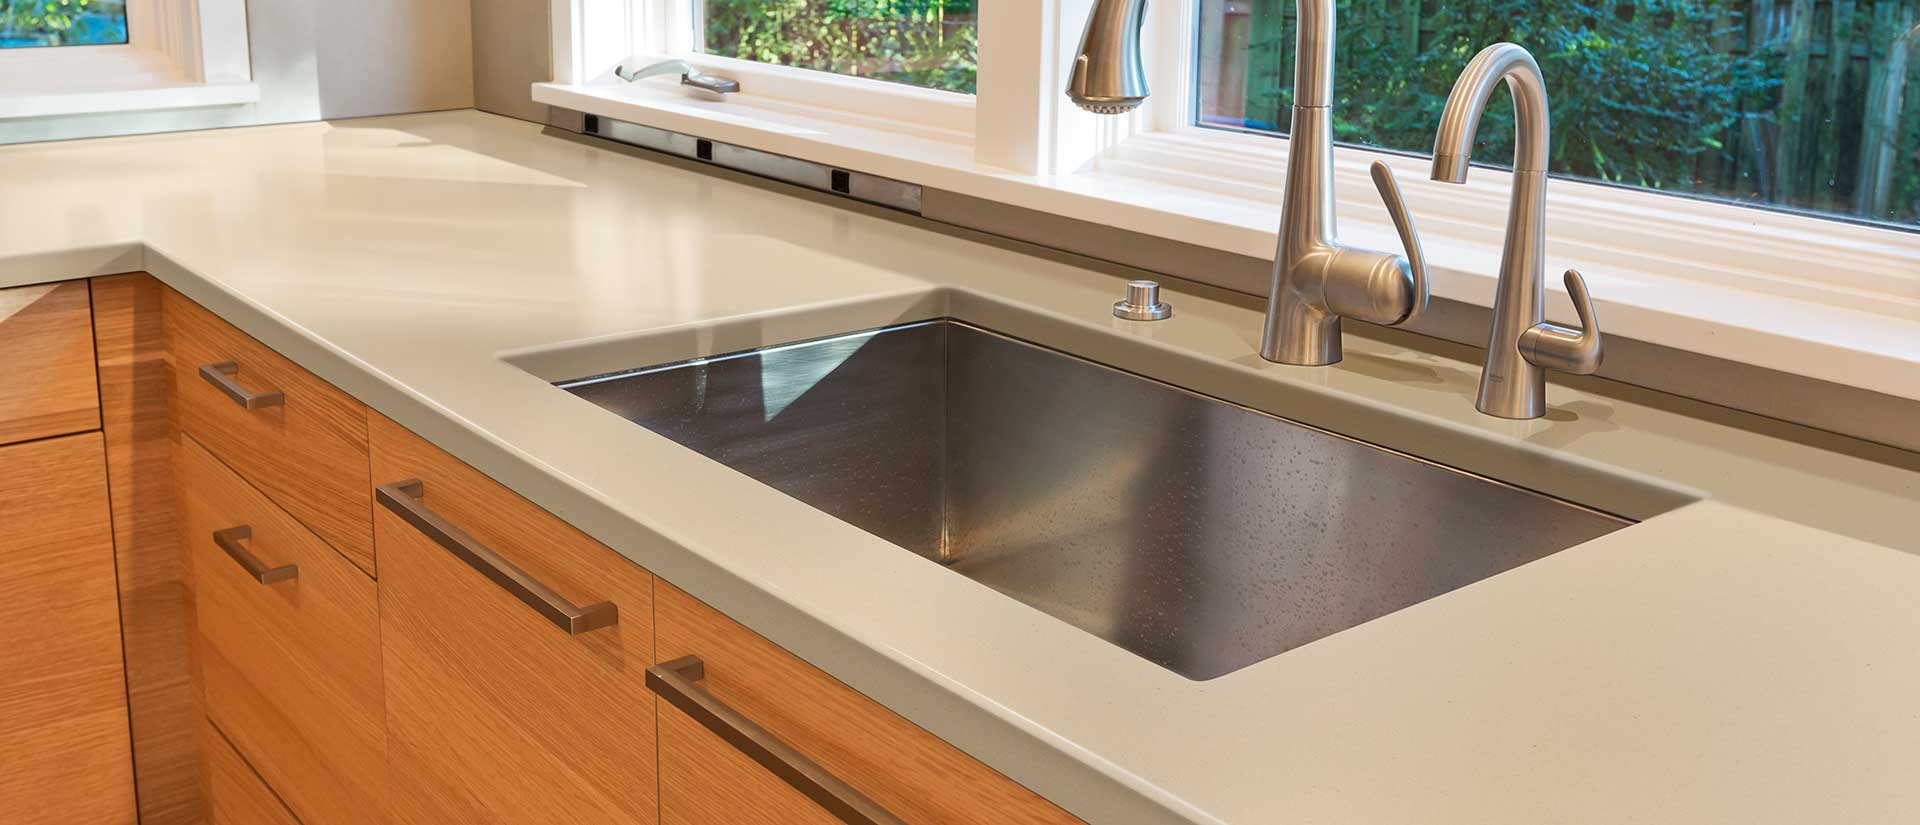 Ivory Cream Quartz Countertops